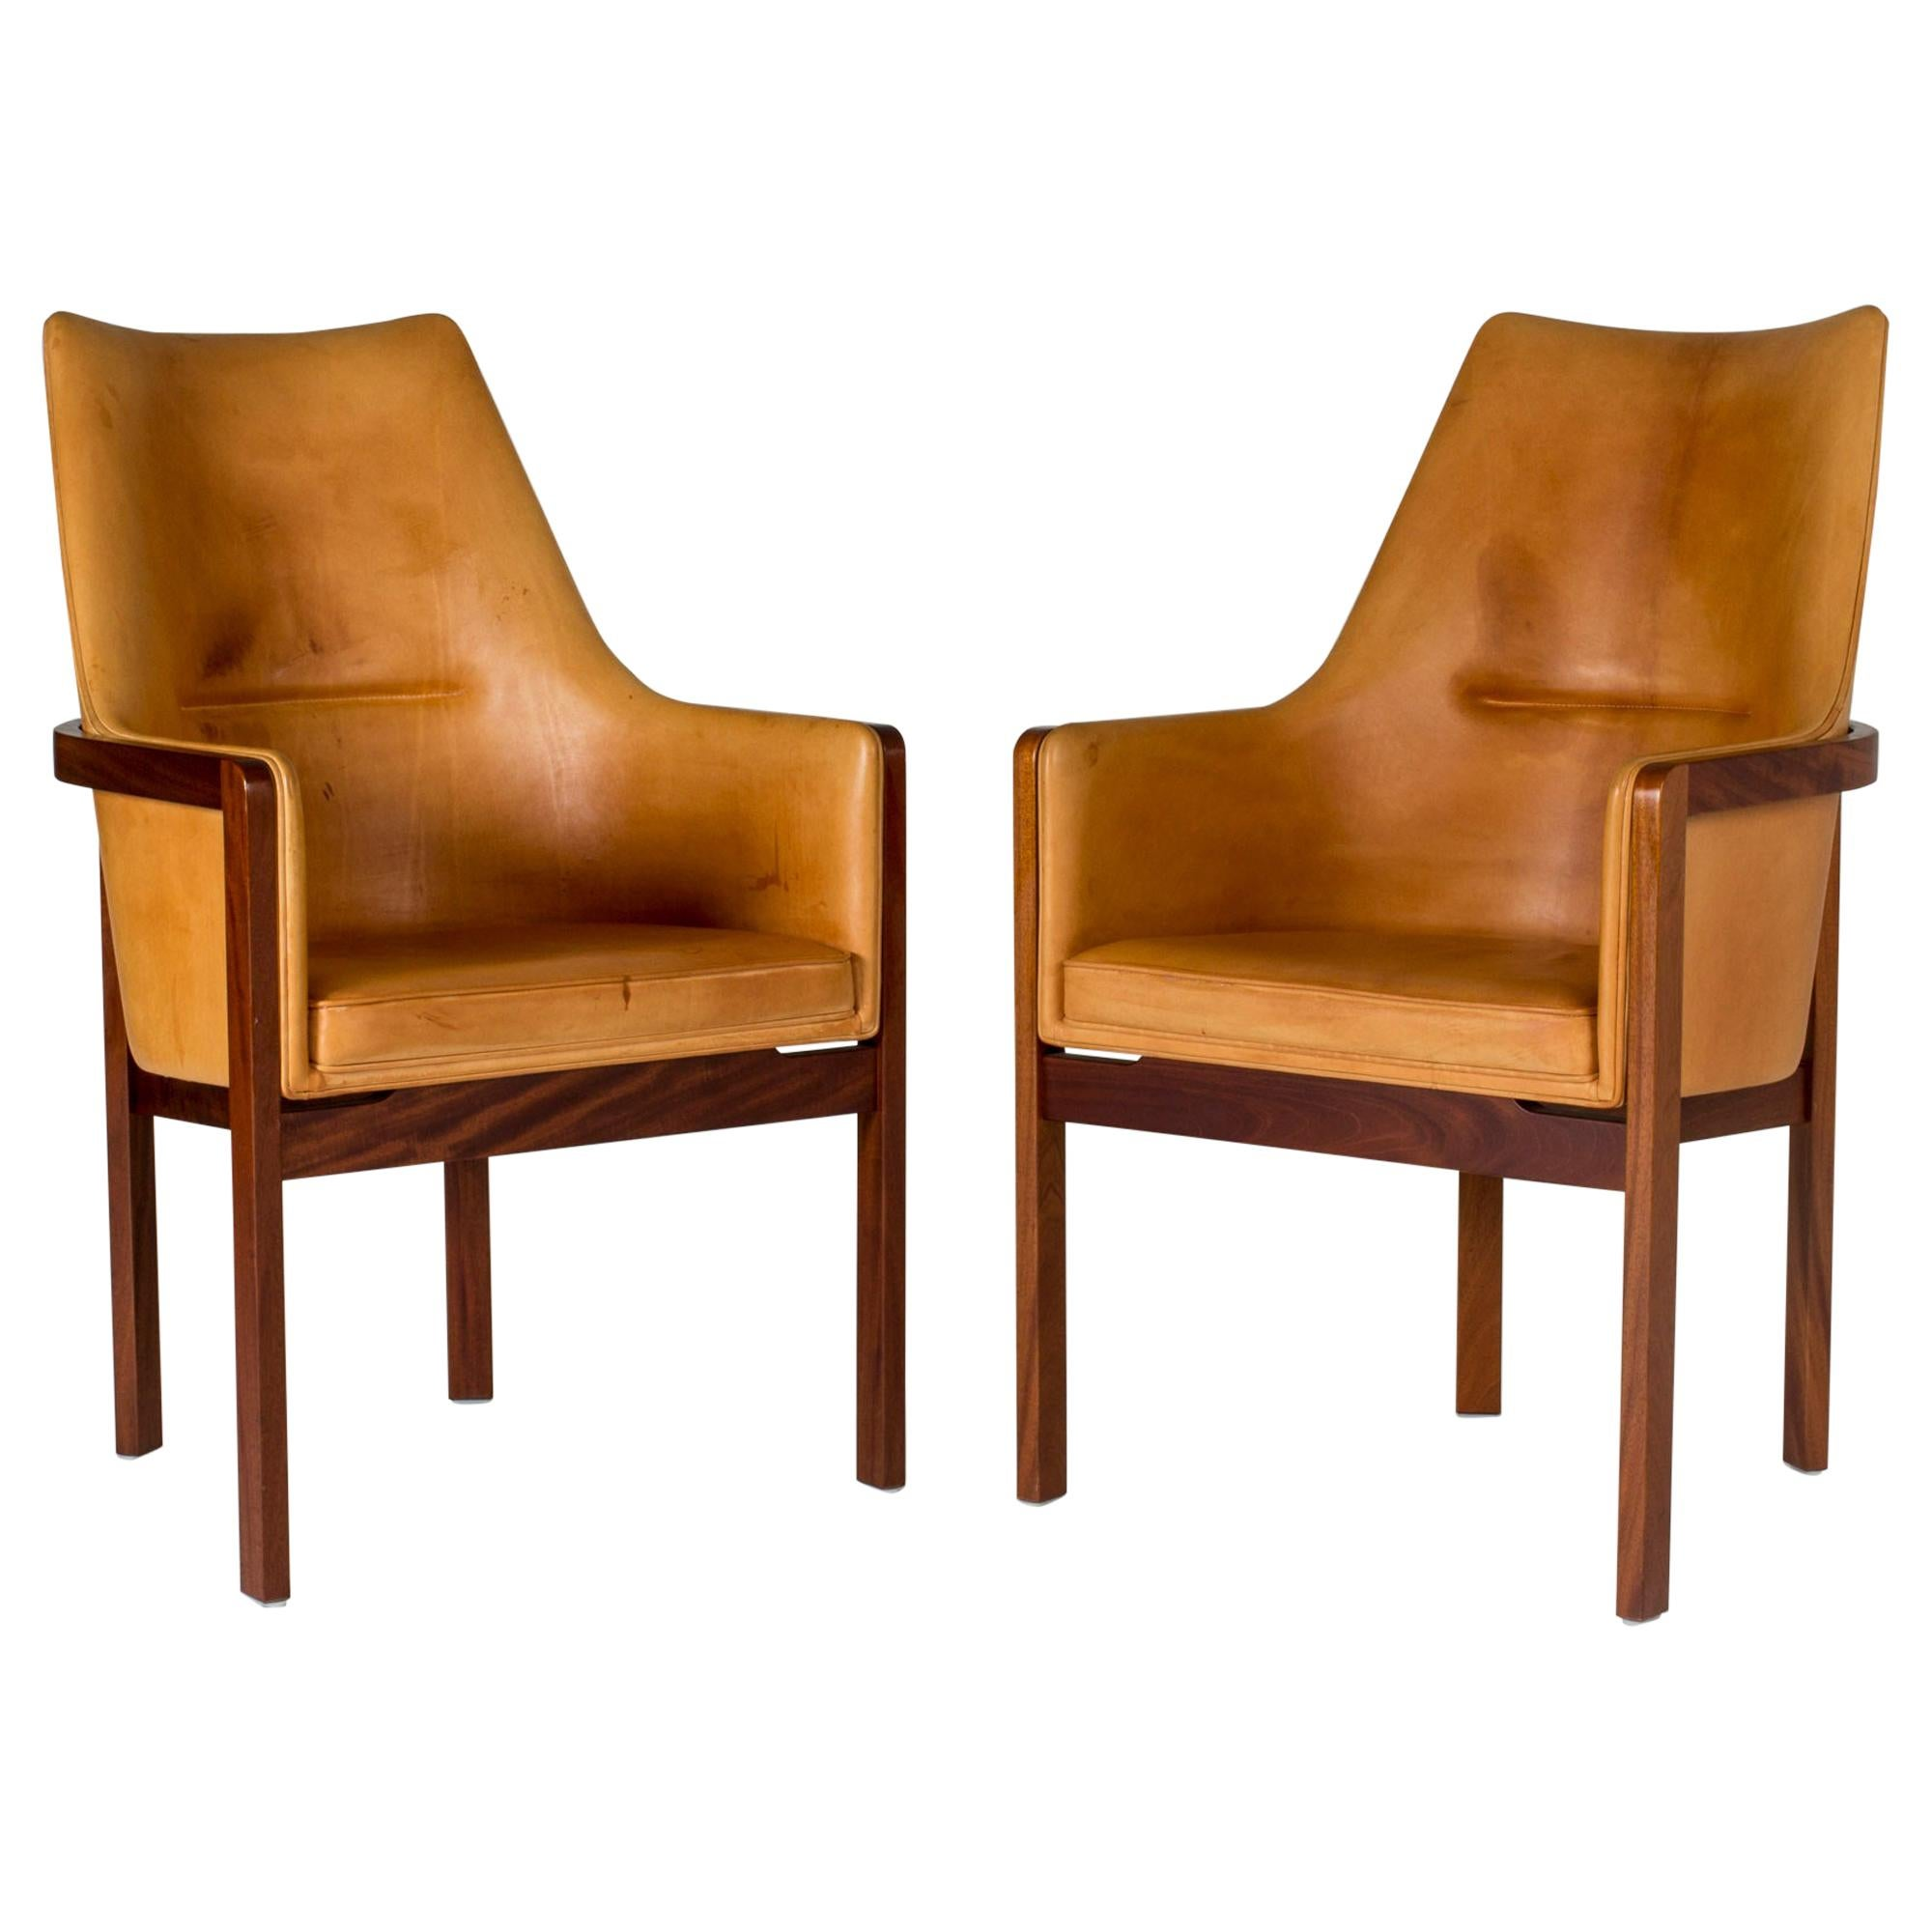 Pair of Leather Armchairs by Bernt Petersen